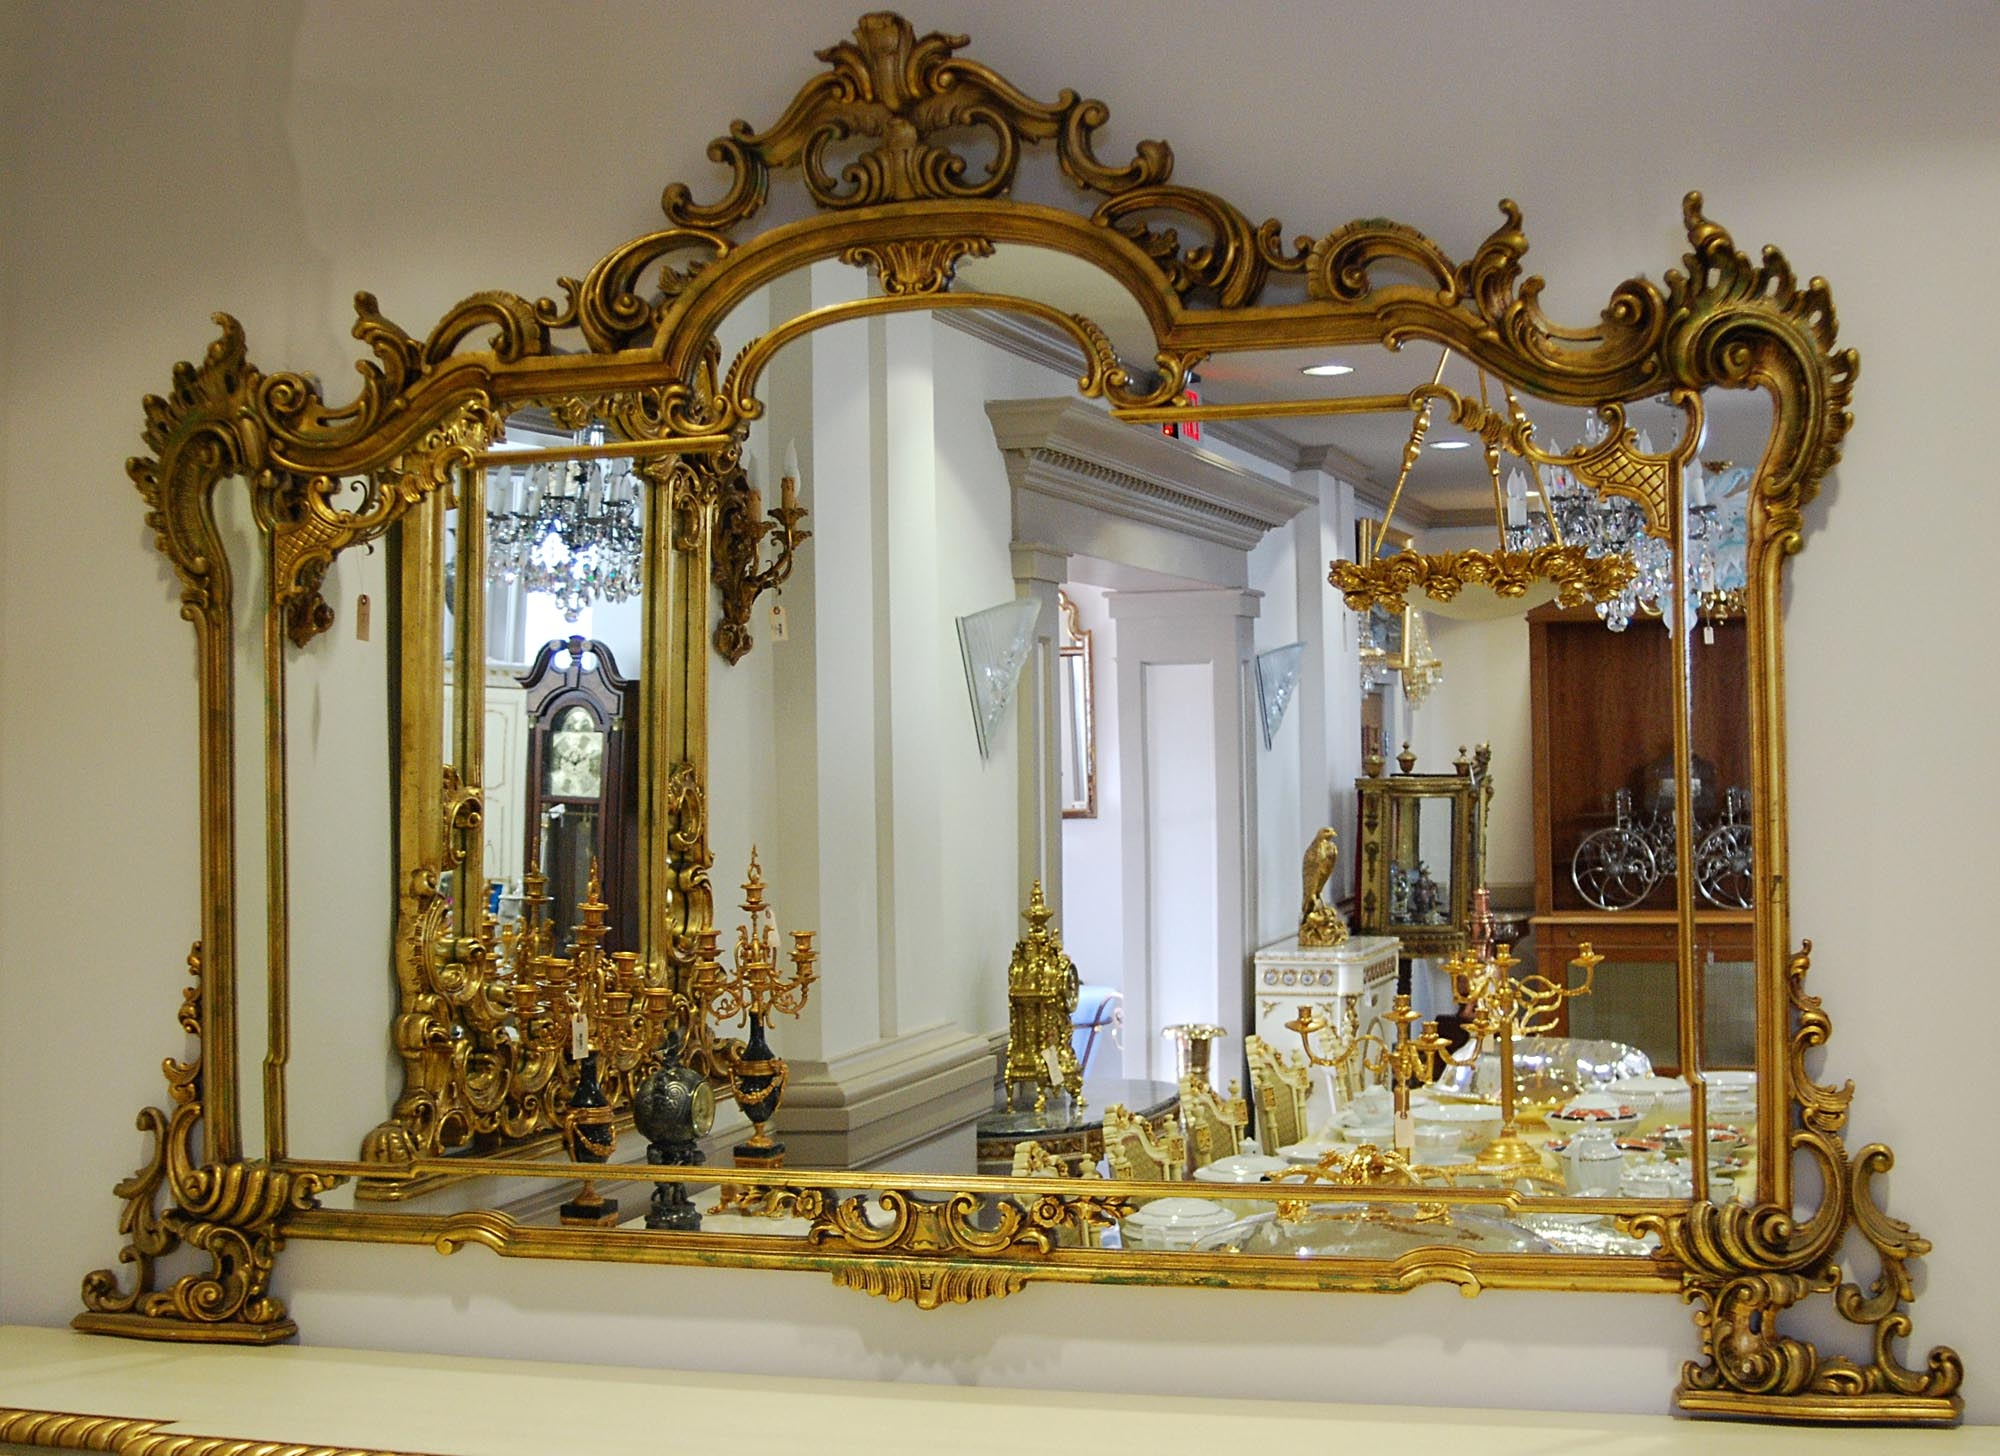 Italian Rococo Mirror Stuff To Buy Pinterest Rococo And Exterior With Regard To Rococo Mirrors (Image 11 of 15)